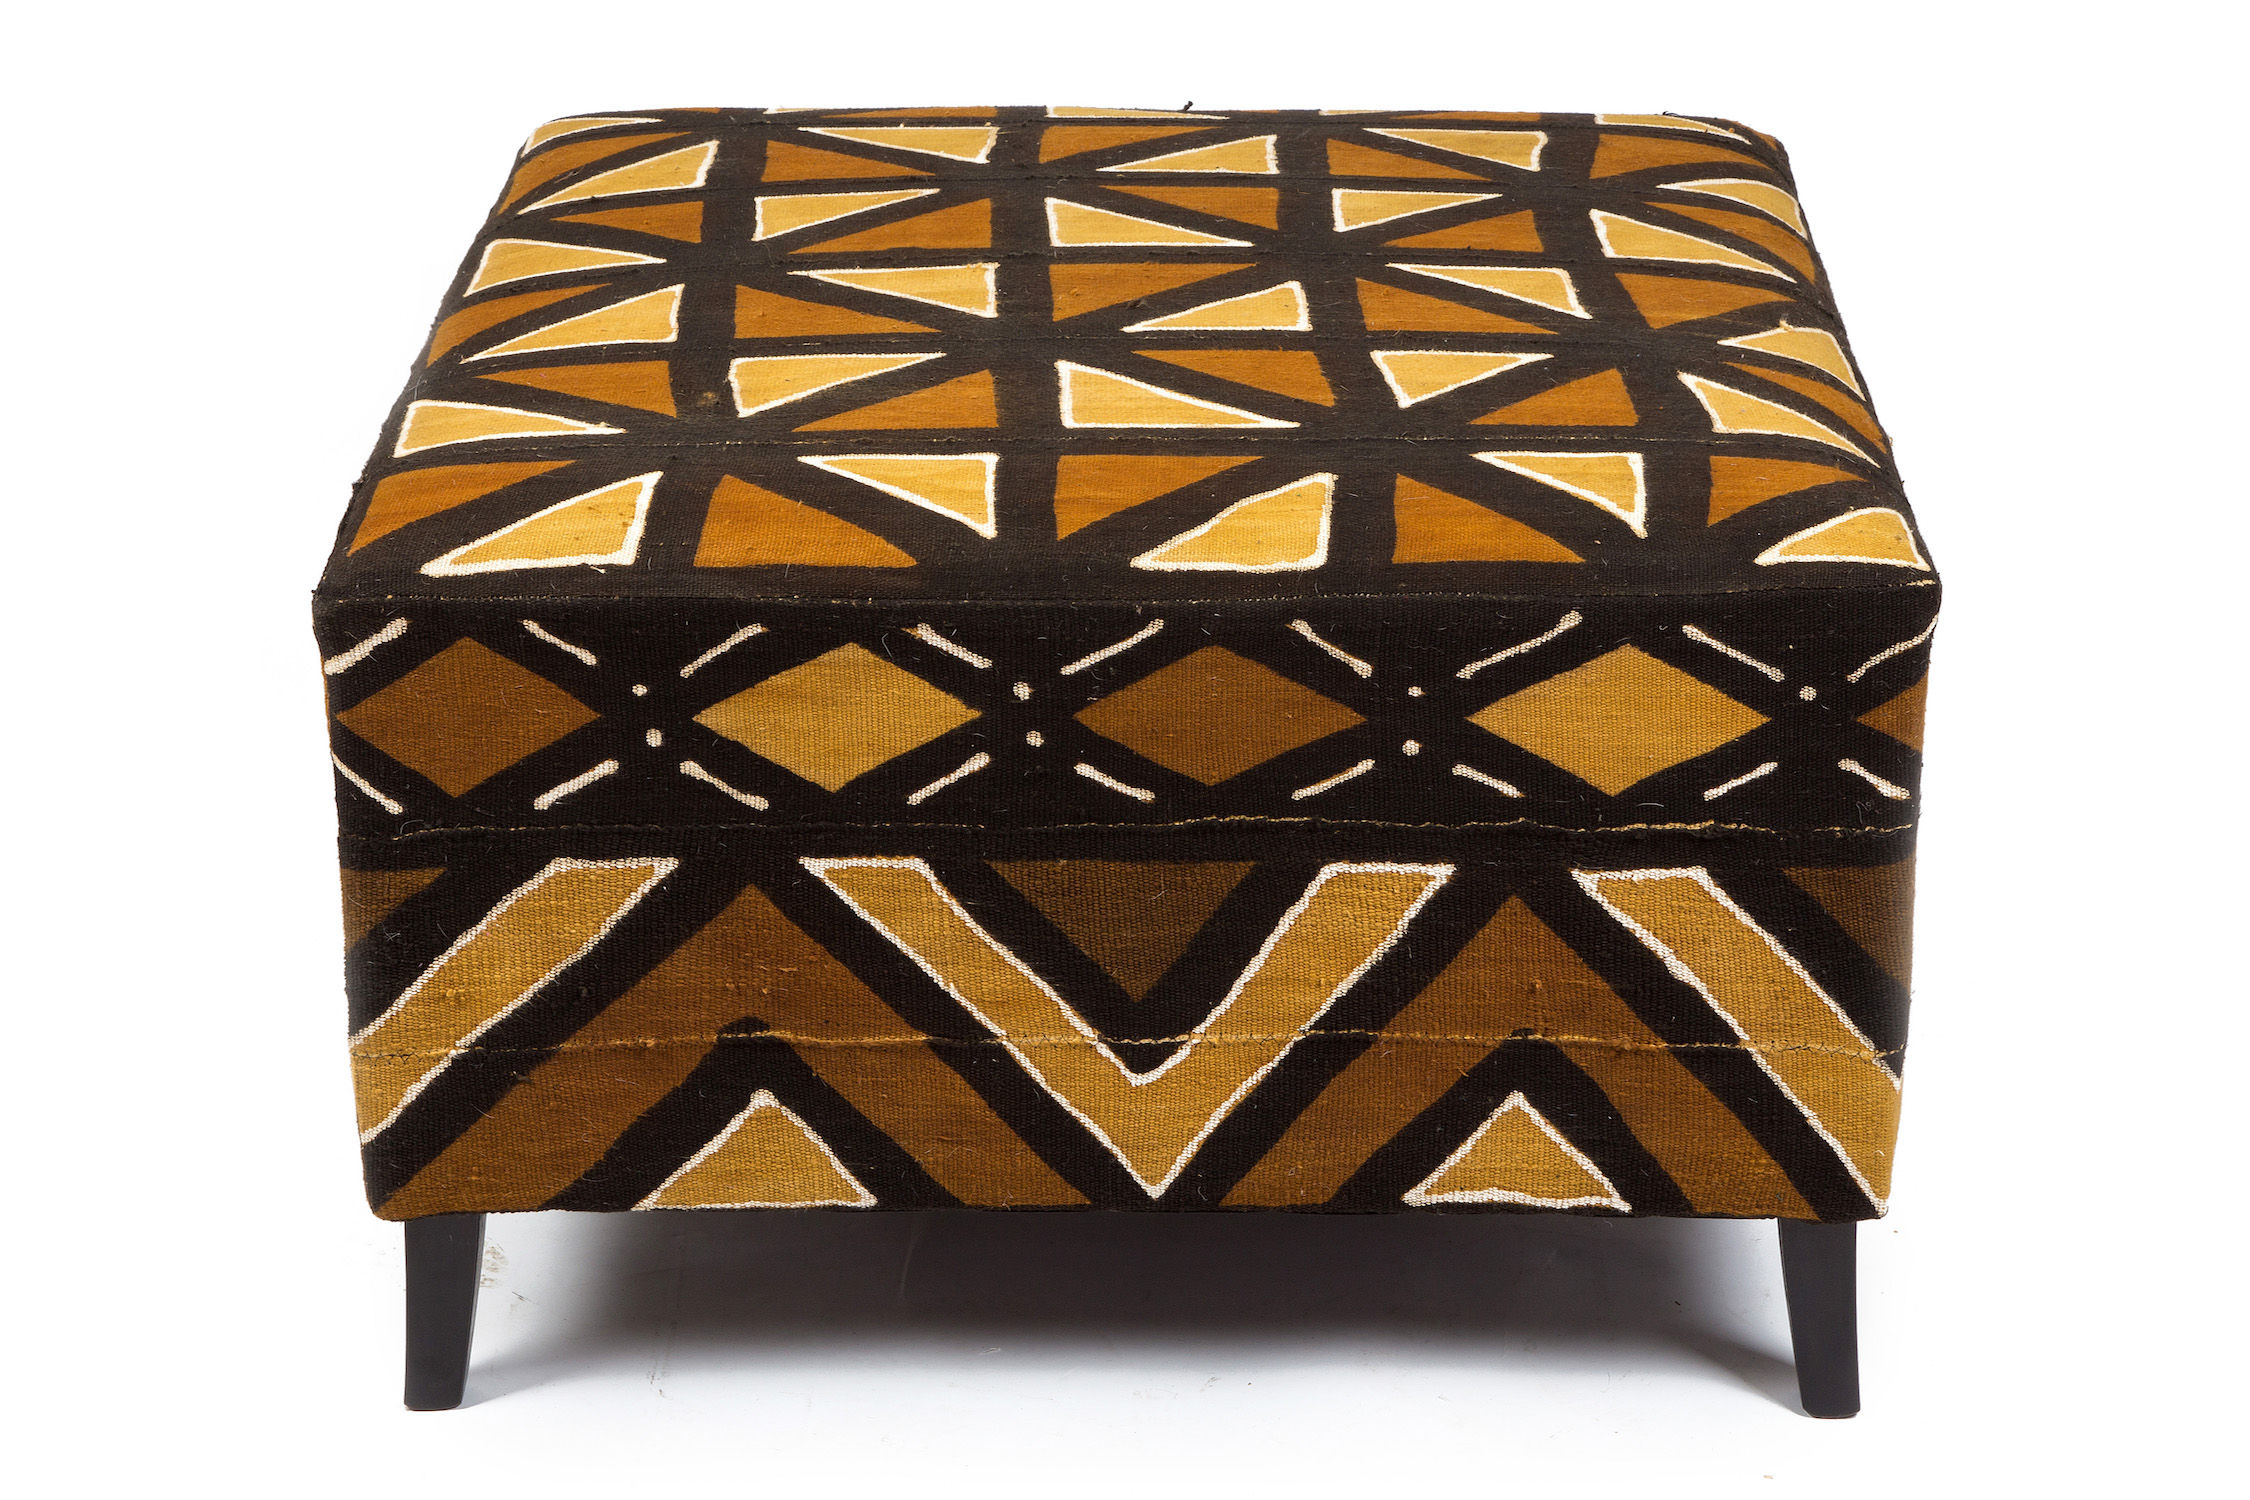 Mudcloth Footstool with Stitched Borderwork and Black Sabre Legs